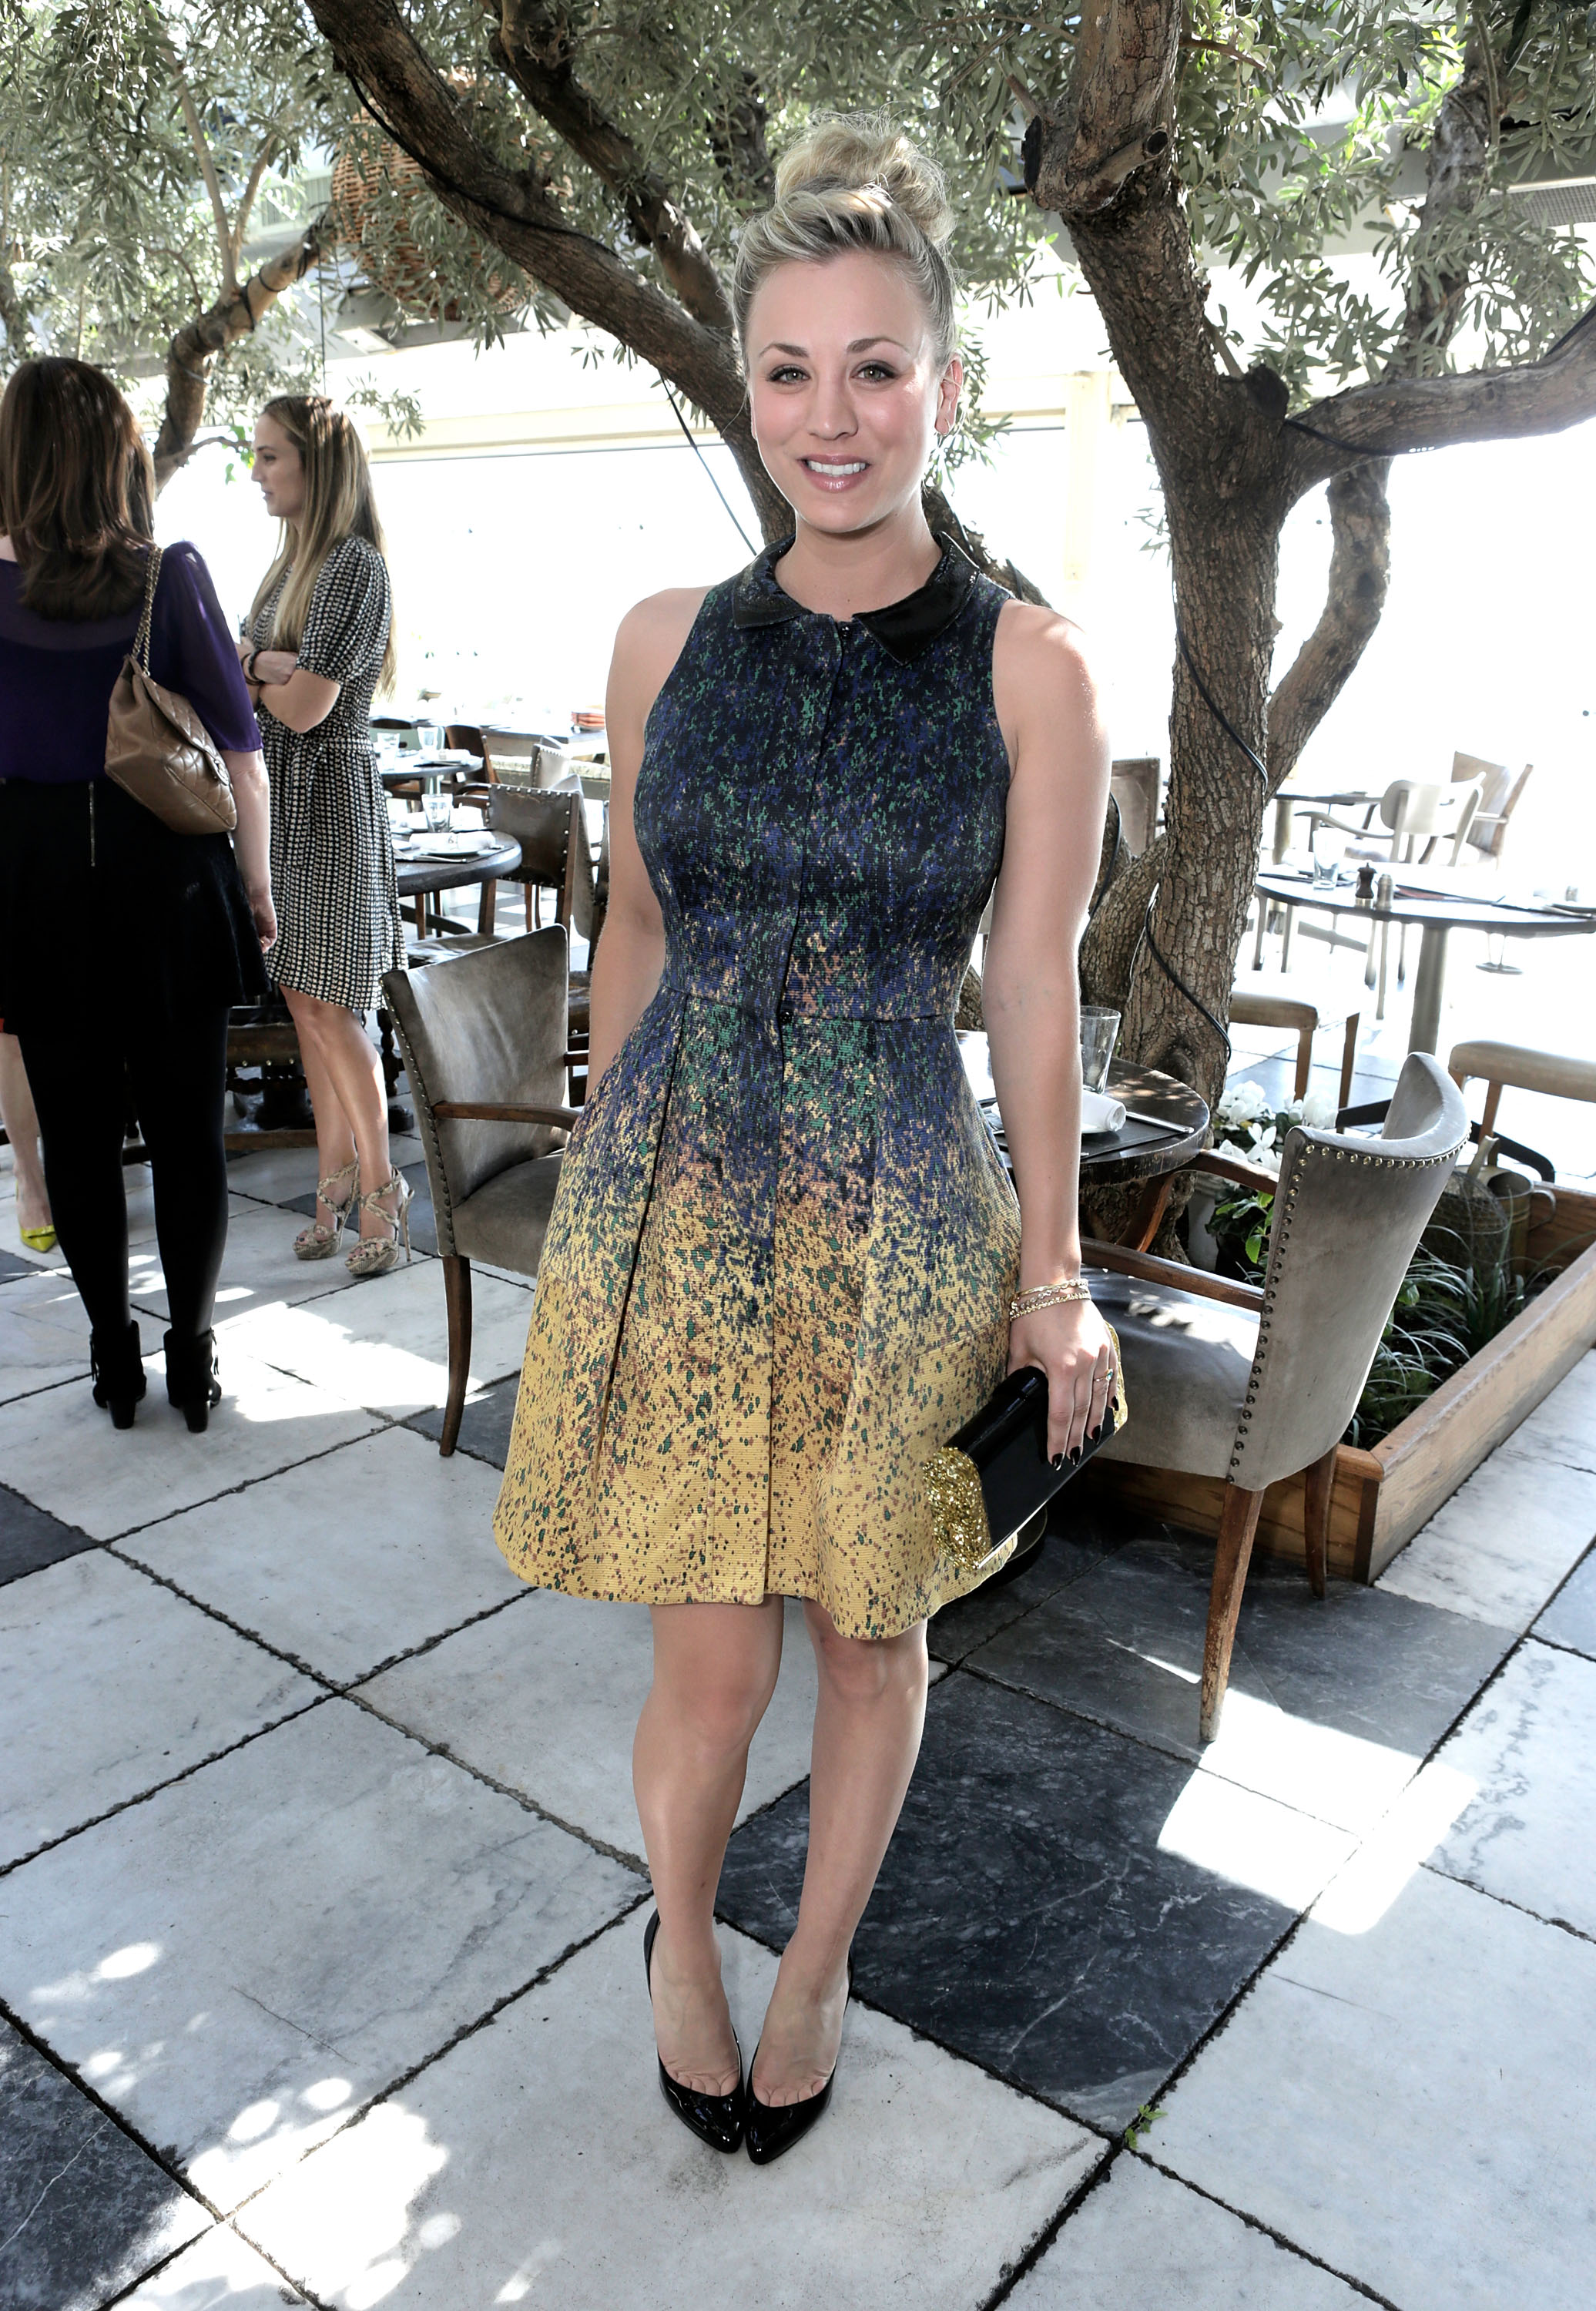 Kaley Cuoco also went with a printed McGinn dress for the daytime affair, accessorized with black Jimmy Choo pumps and a black-and-gold clutch.